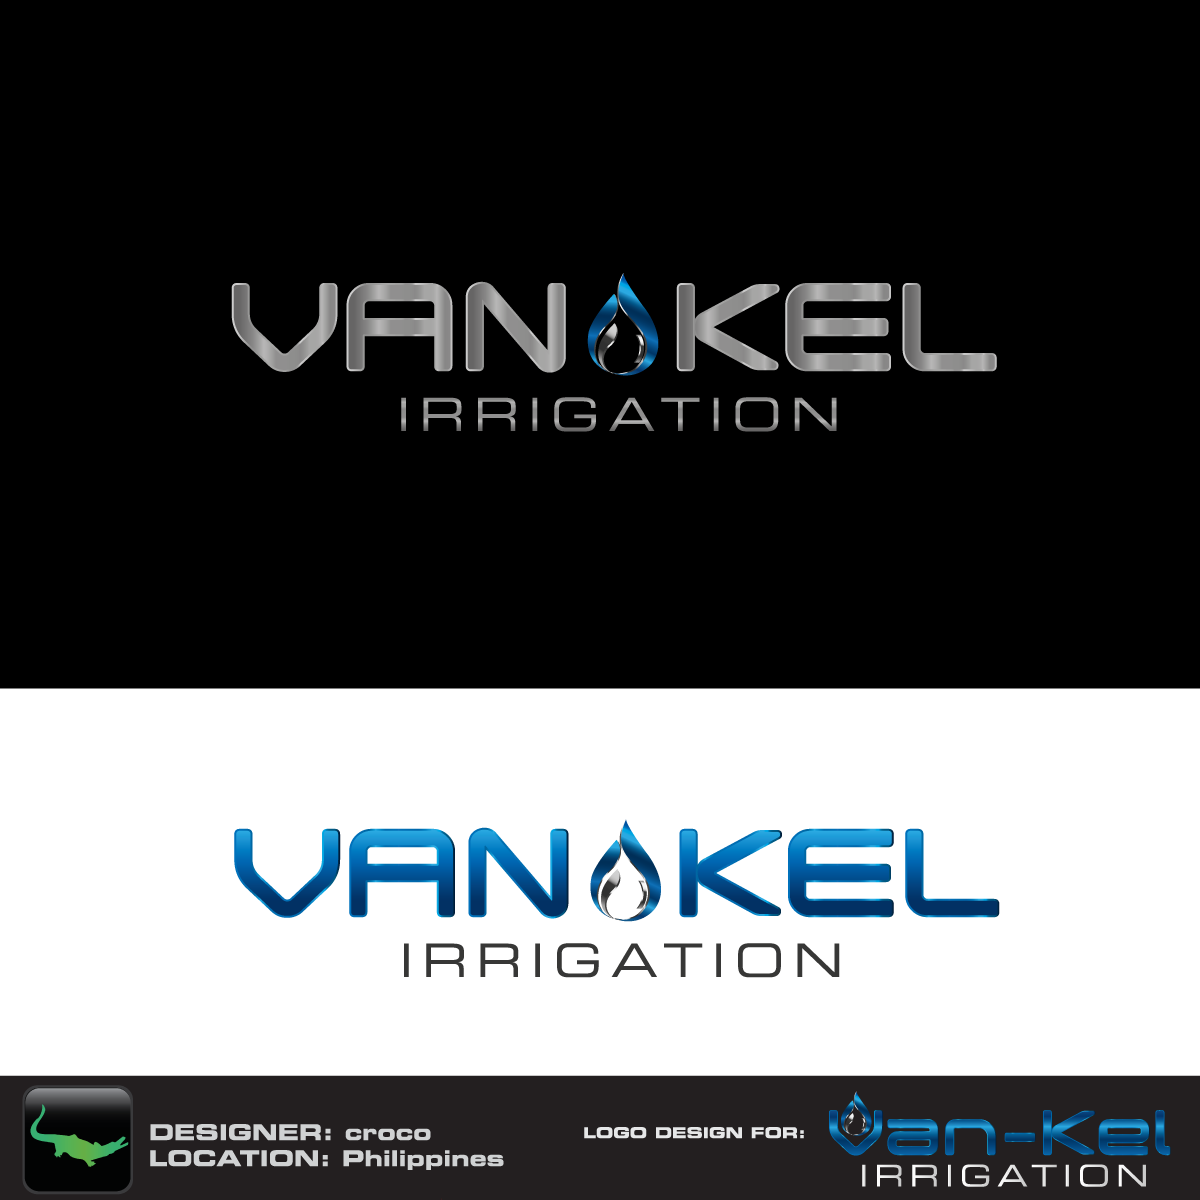 Logo Design by rockin - Entry No. 130 in the Logo Design Contest Van-Kel Irrigation Logo Design.